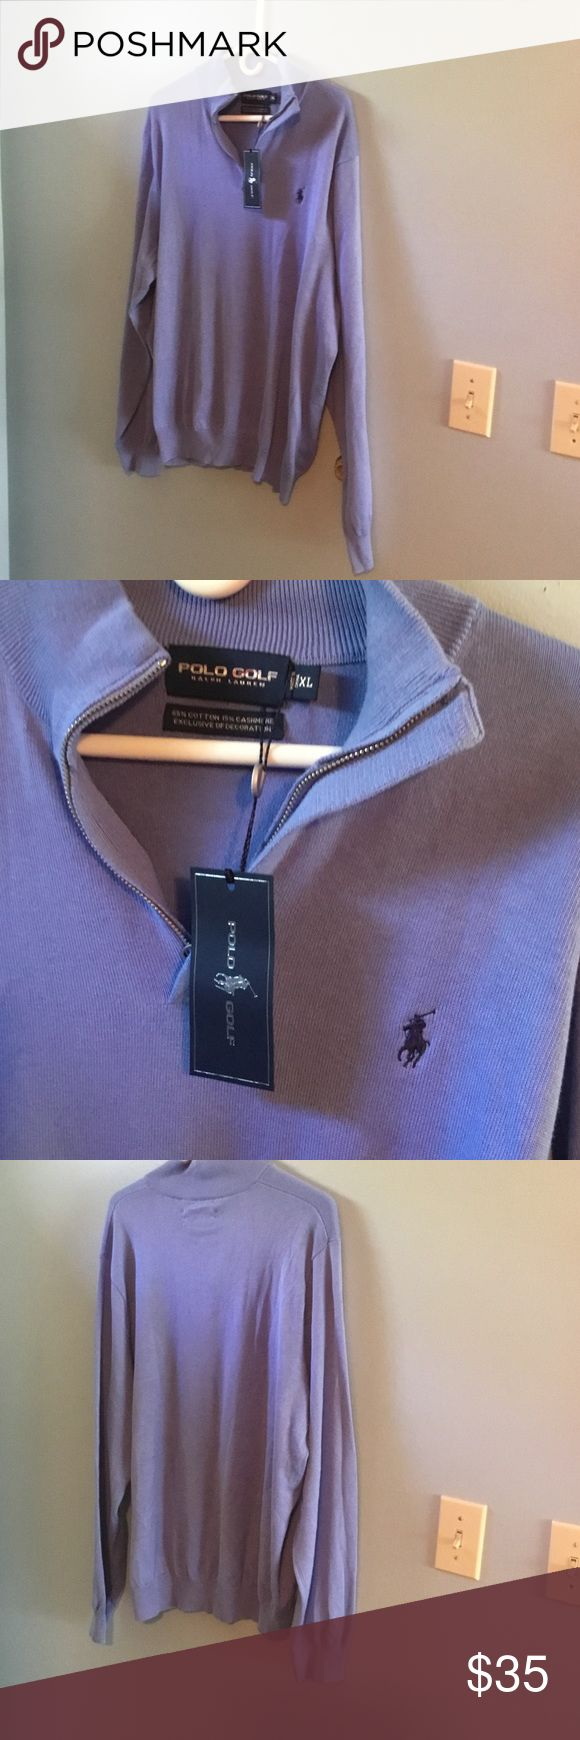 POLO GOLF SWEATER POLO. GOLF.   1/4 zip  sweater. Beautiful shade of blue pet and smoke free home thank you for looking Polo golf Sweaters Zip Up